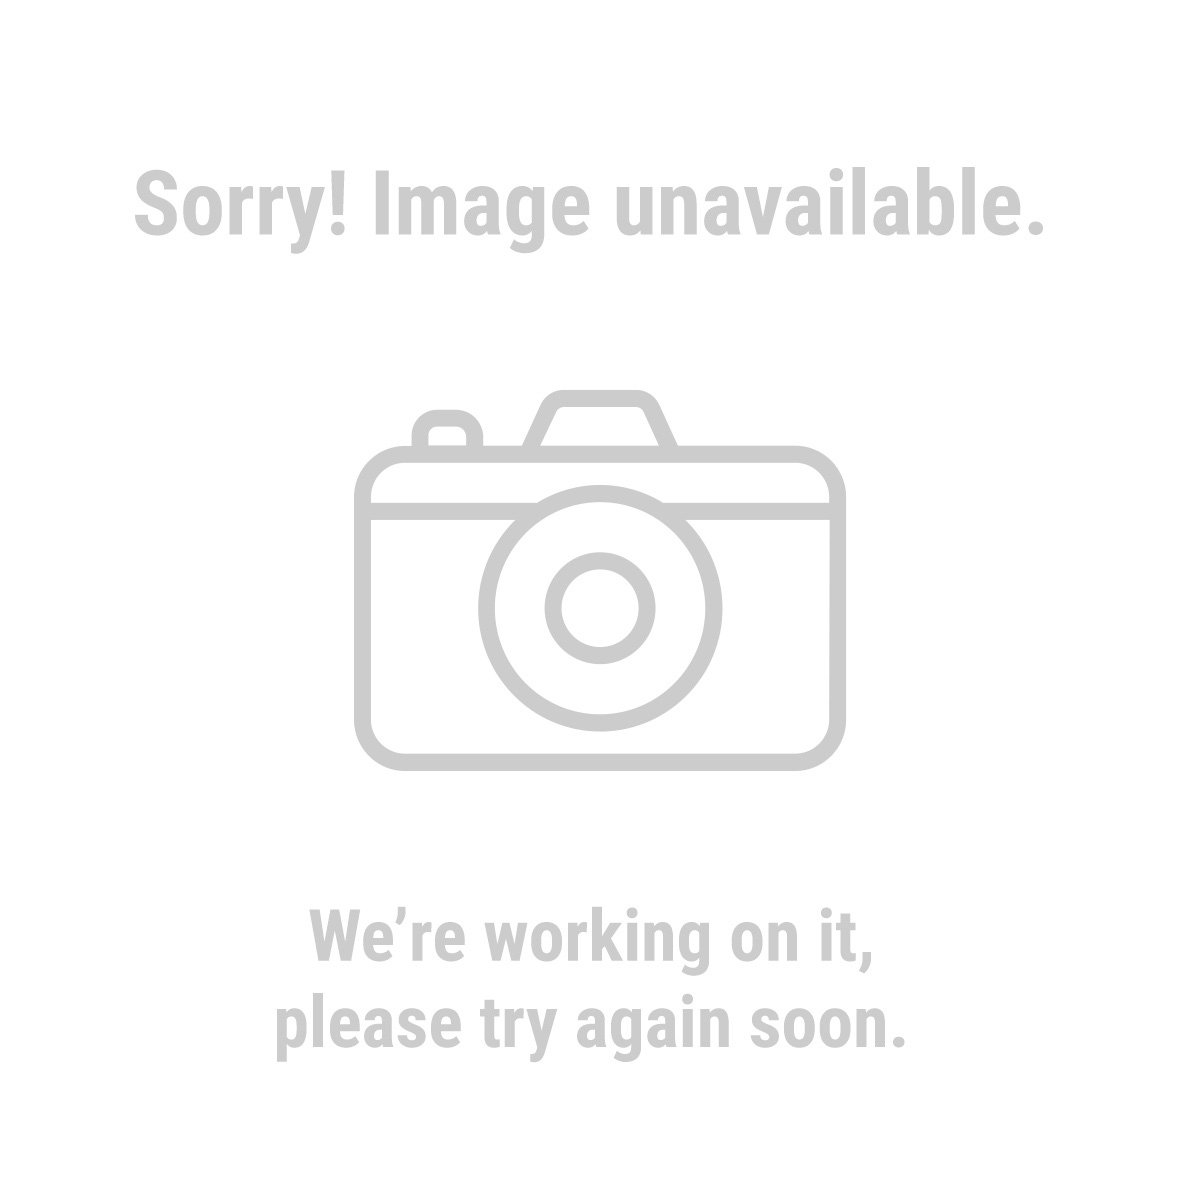 Chicago Electric Welding 63121 Auto Darkening Welding Helmet with Racing Stripe Design